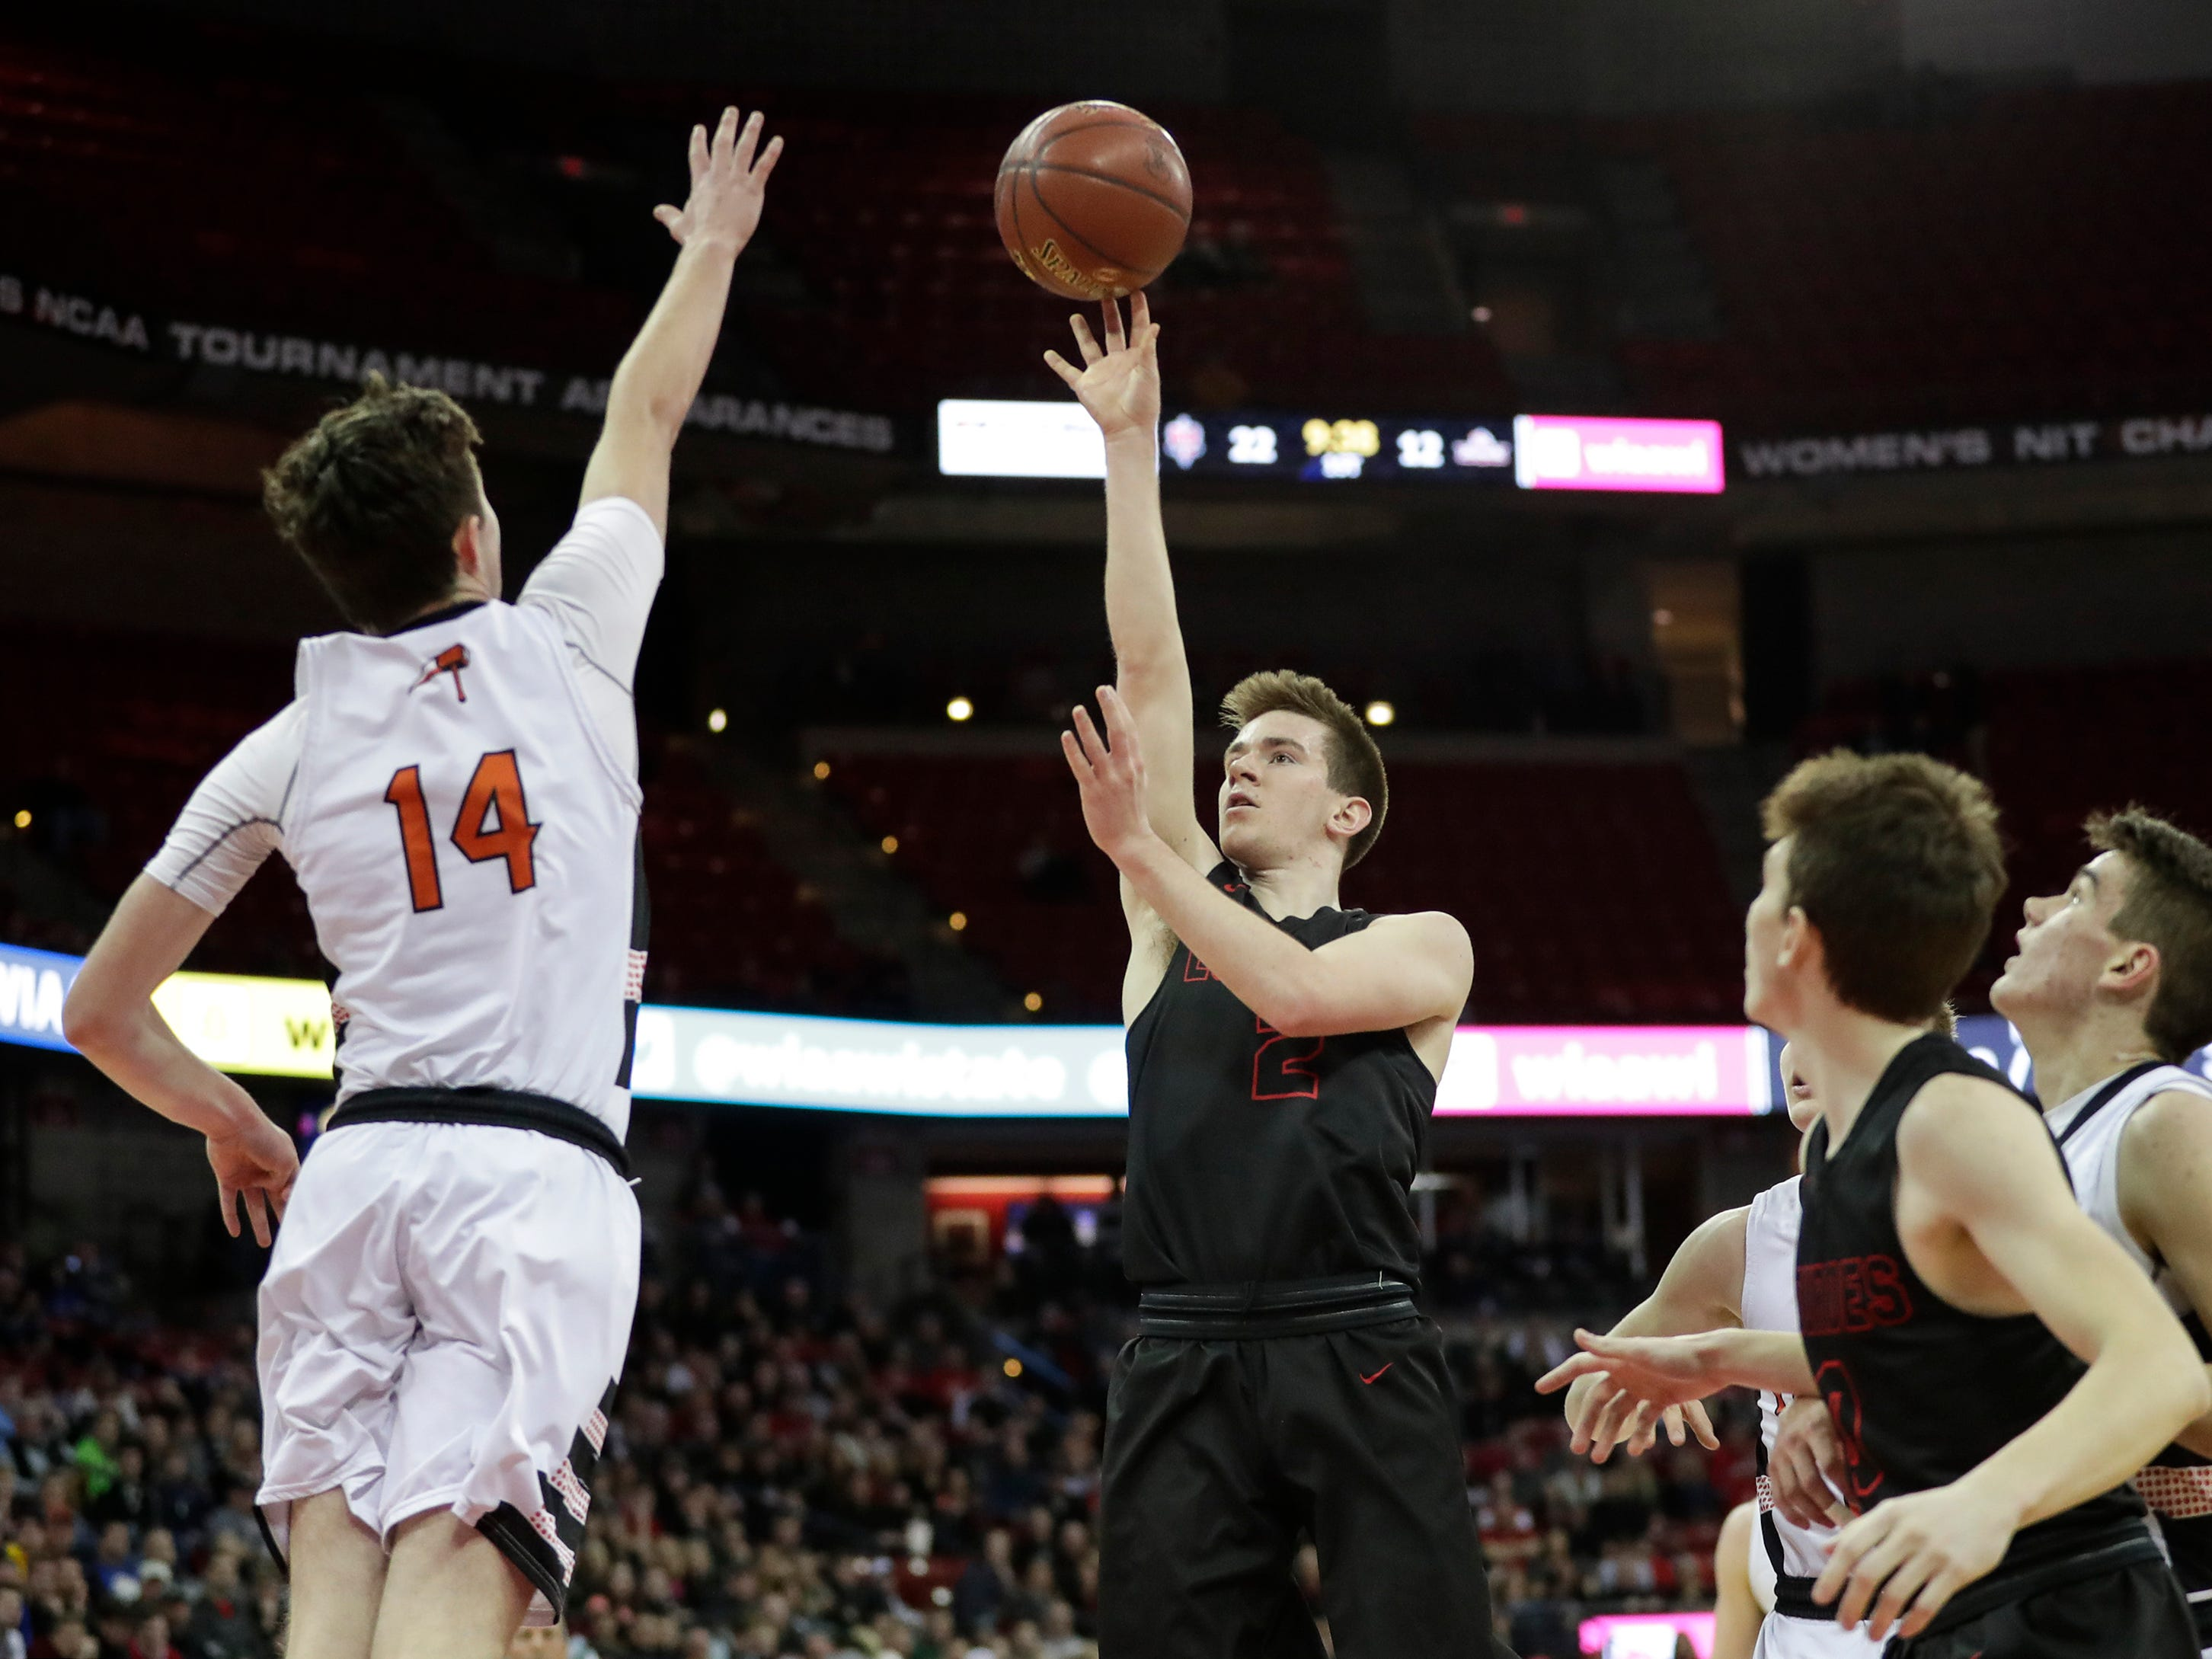 Lourdes Academy's Henry Noone (2) shoots against Osseo-Fairchild High School's Garrett Koxlien (14) during their WIAA Division 4 boys basketball state semifinal at the Kohl Center Thursday, March 14, 2019, in Madison, Wis.